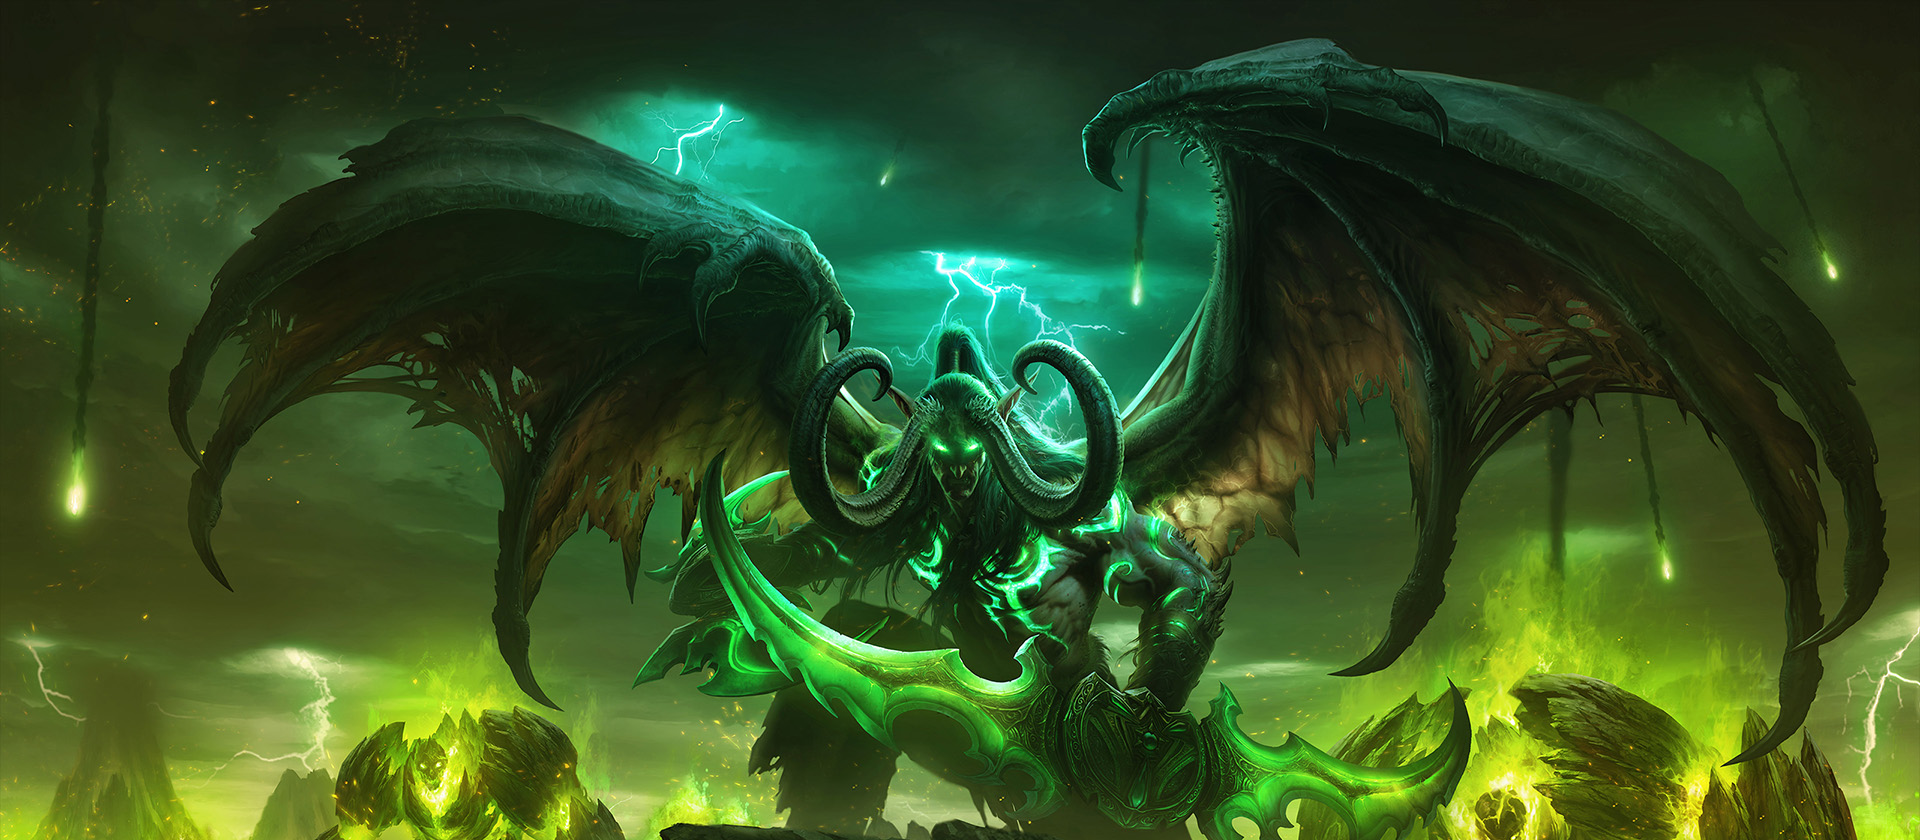 World of Warcraft team responds to shrinking subscriber numbers